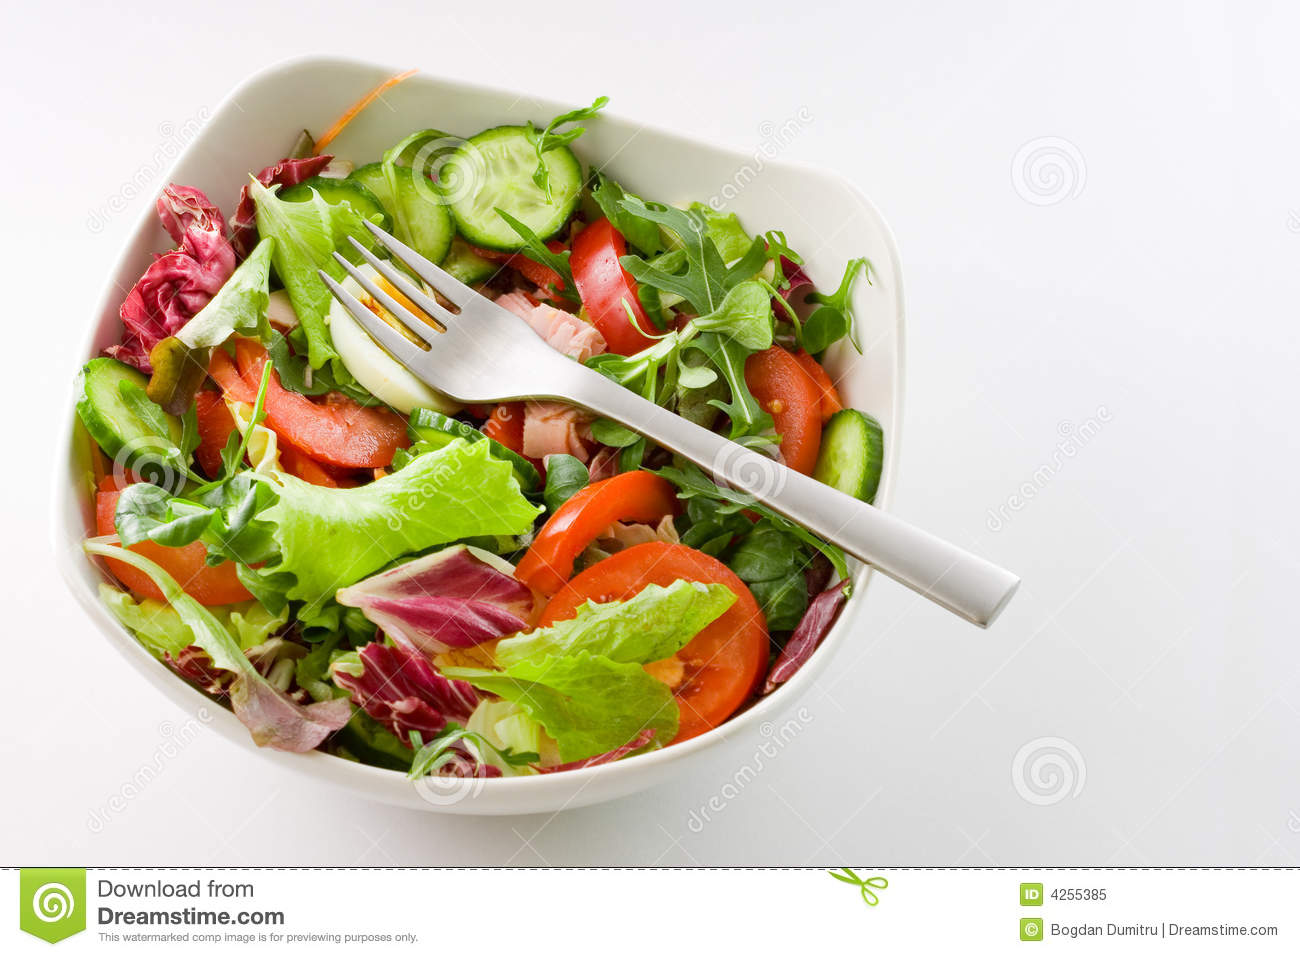 Top view of white bowl of mixed vegetables salad on white background.